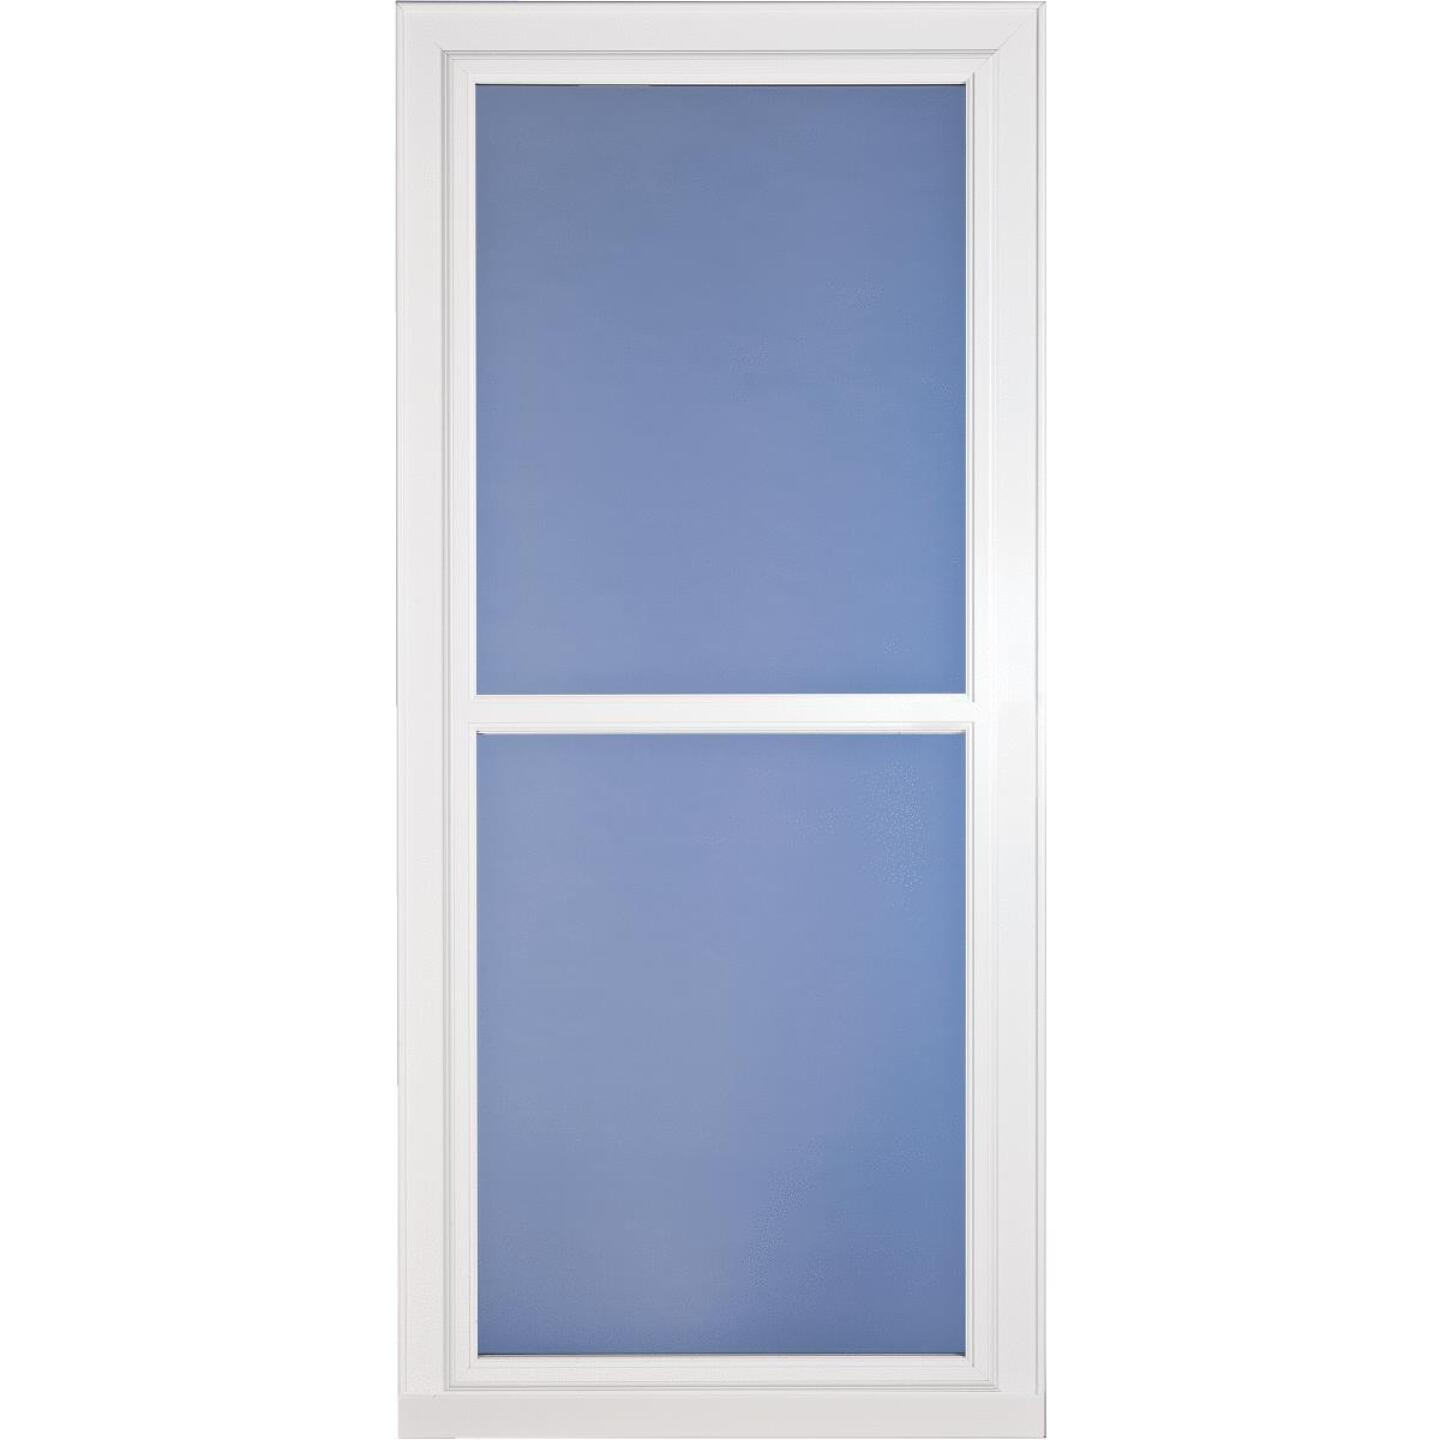 Larson Easy Vent 146 Series 32 In. W. x 81 In. H. x 1-7/8 In. Thick White Full View Aluminum Storm Door Image 1